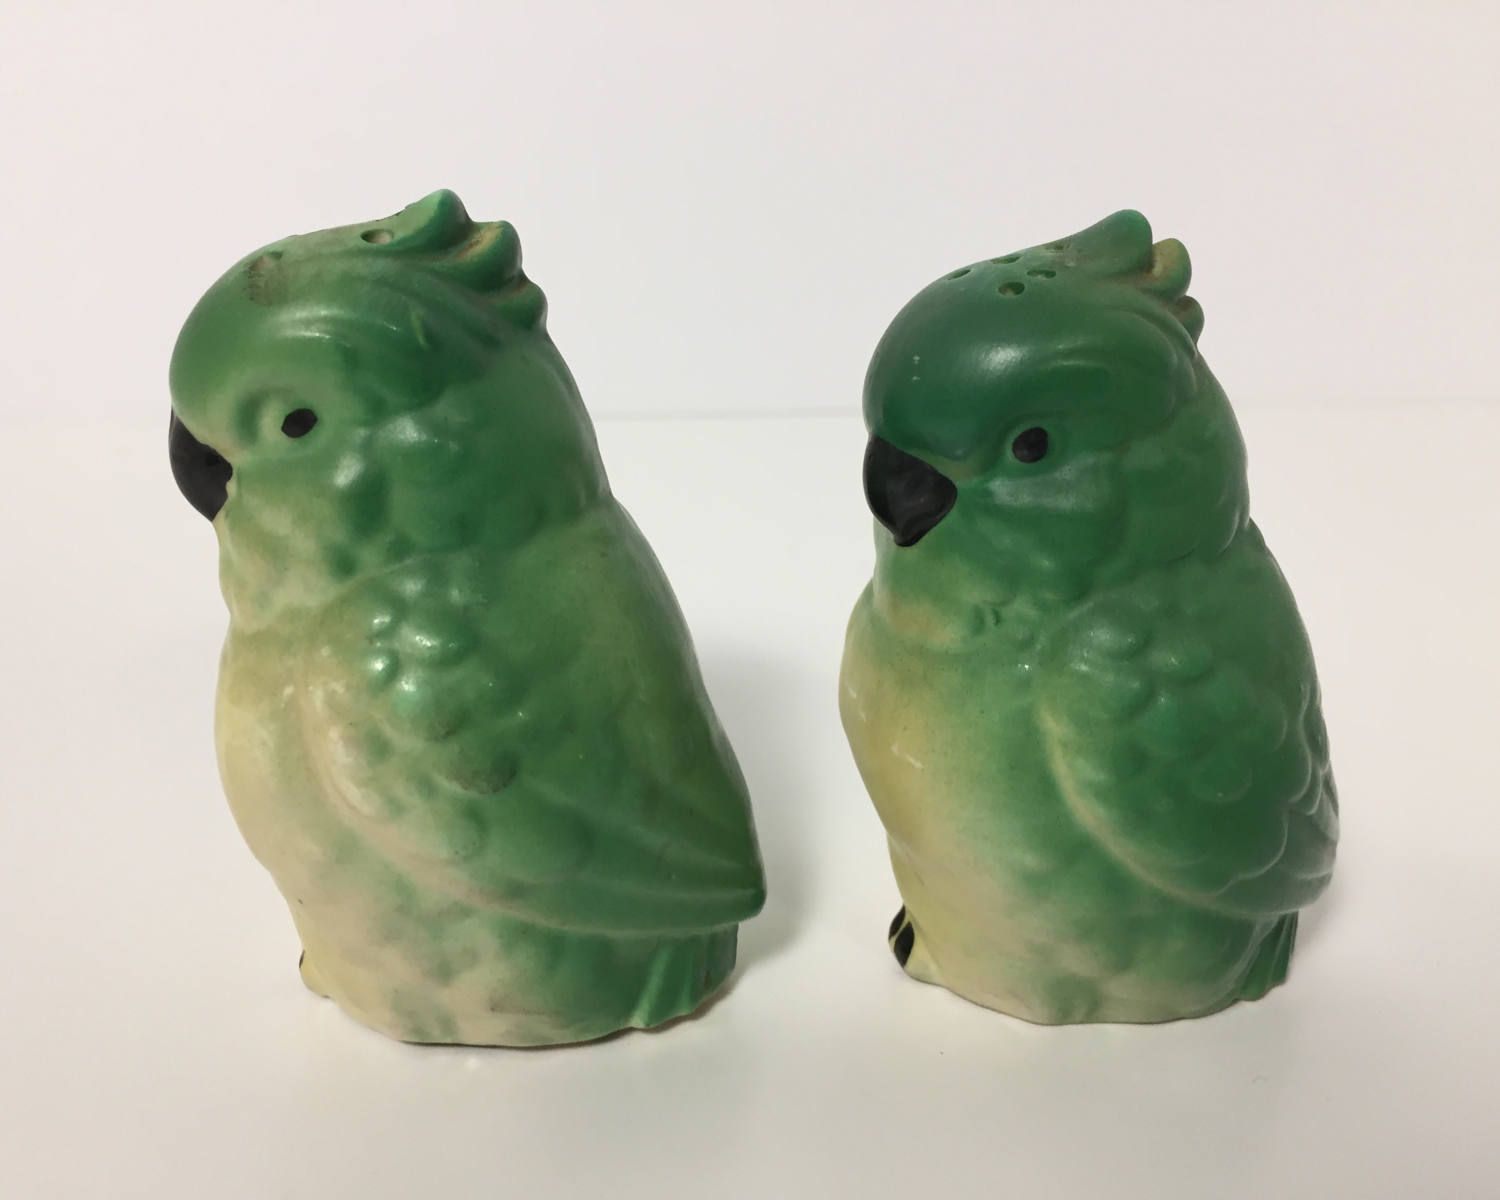 Vintage Novelty Green Parrot Salt and Pepper Shakers - Made in Japan Figural Shakers - Parakeet or Cockatoo by BagBagSydVintage on Etsy